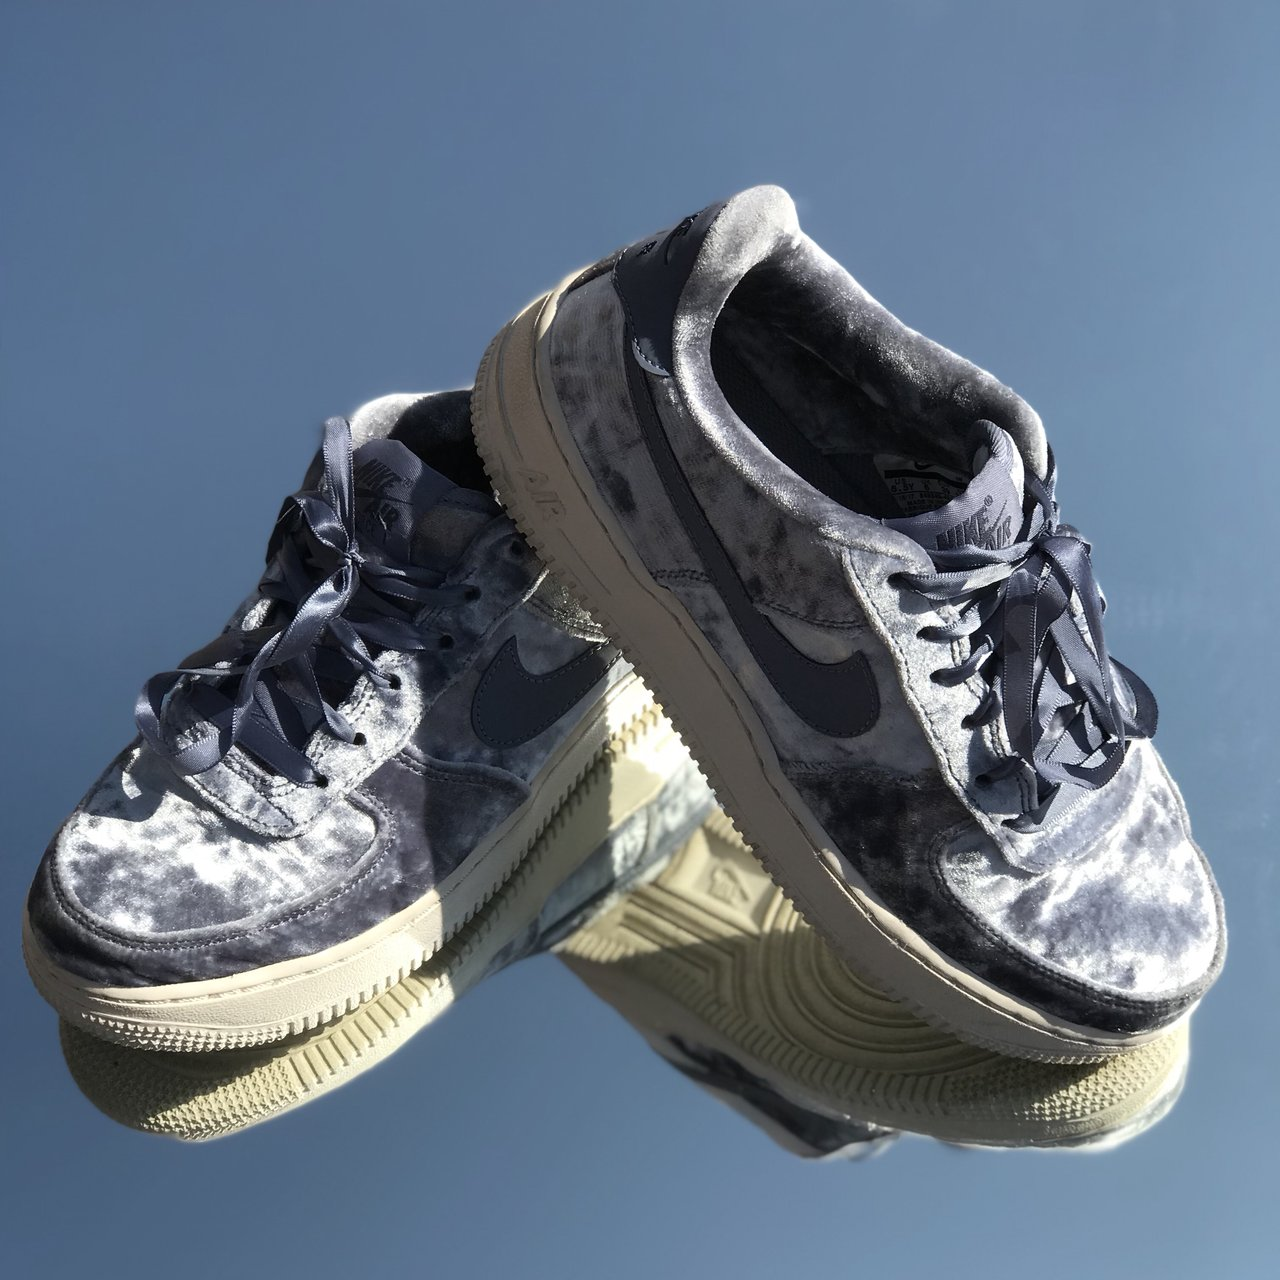 separation shoes e2520 5164d  kailanipee. last year. United States. Nike Air Force 1, dark sky blue  crushed velvet,